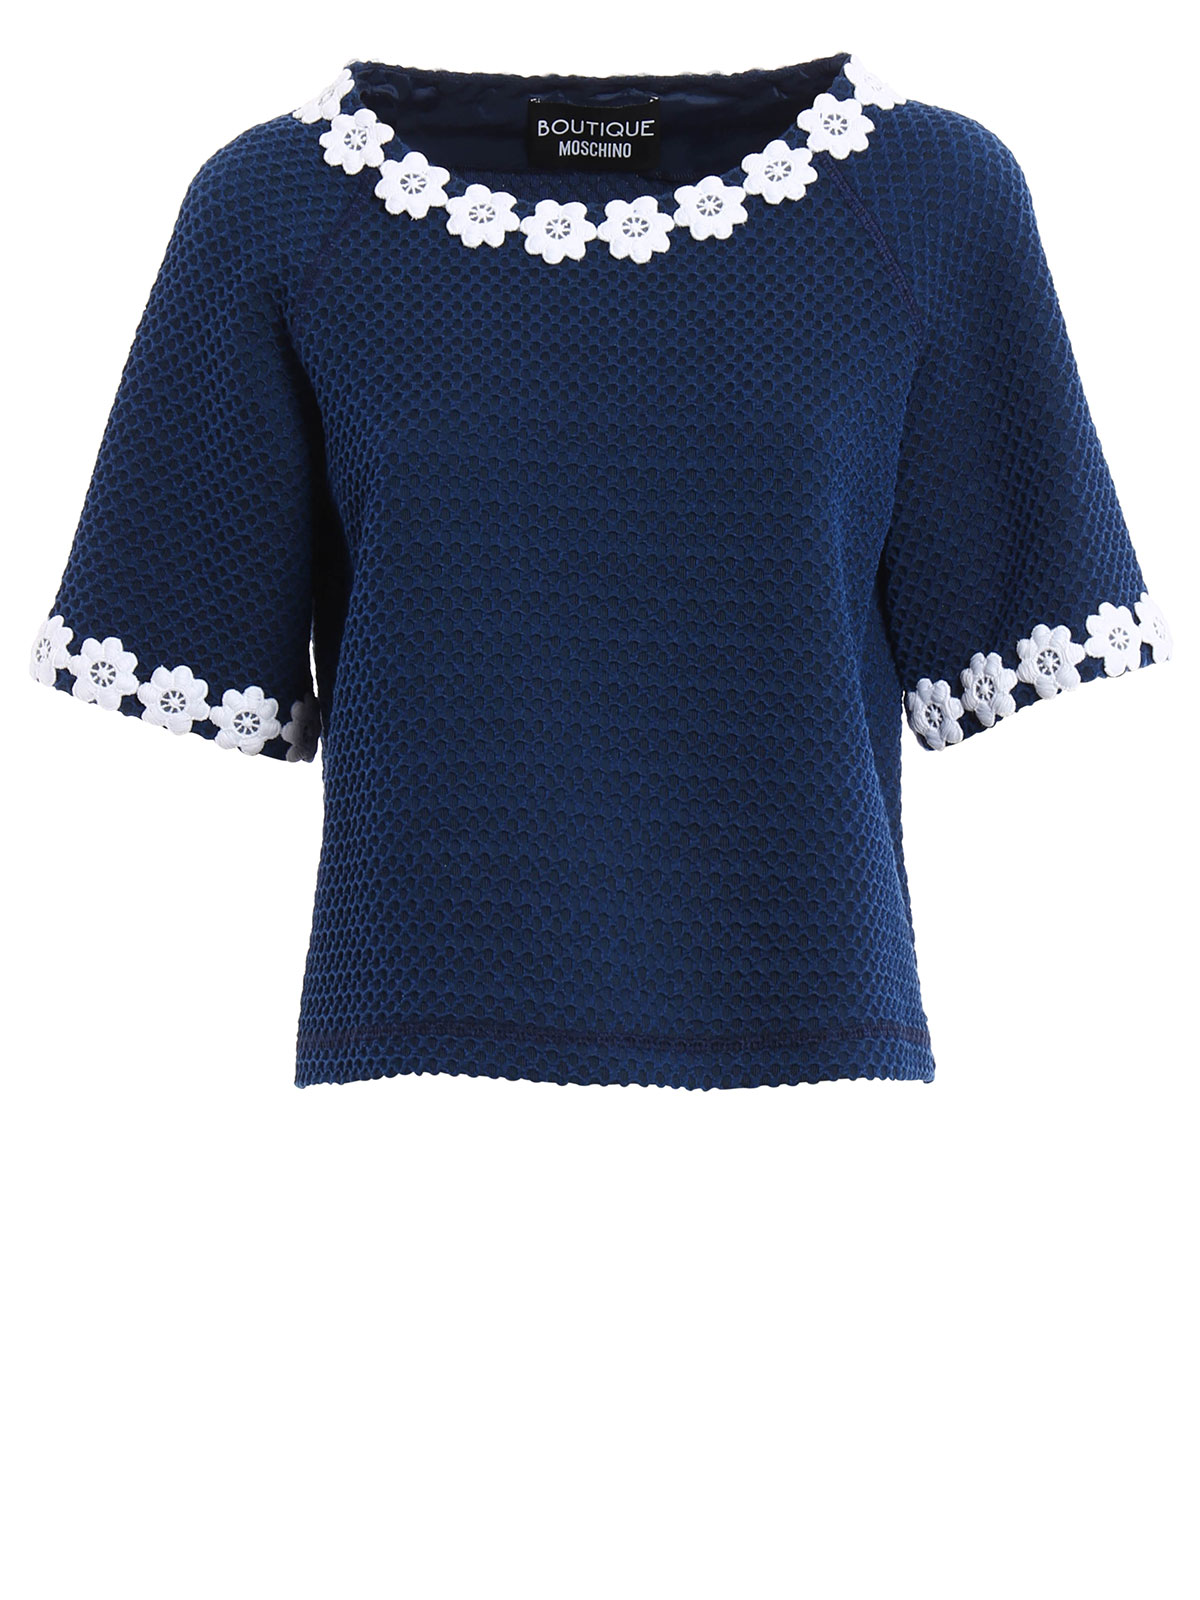 Embroidered collar knitted t shirt by moschino boutique